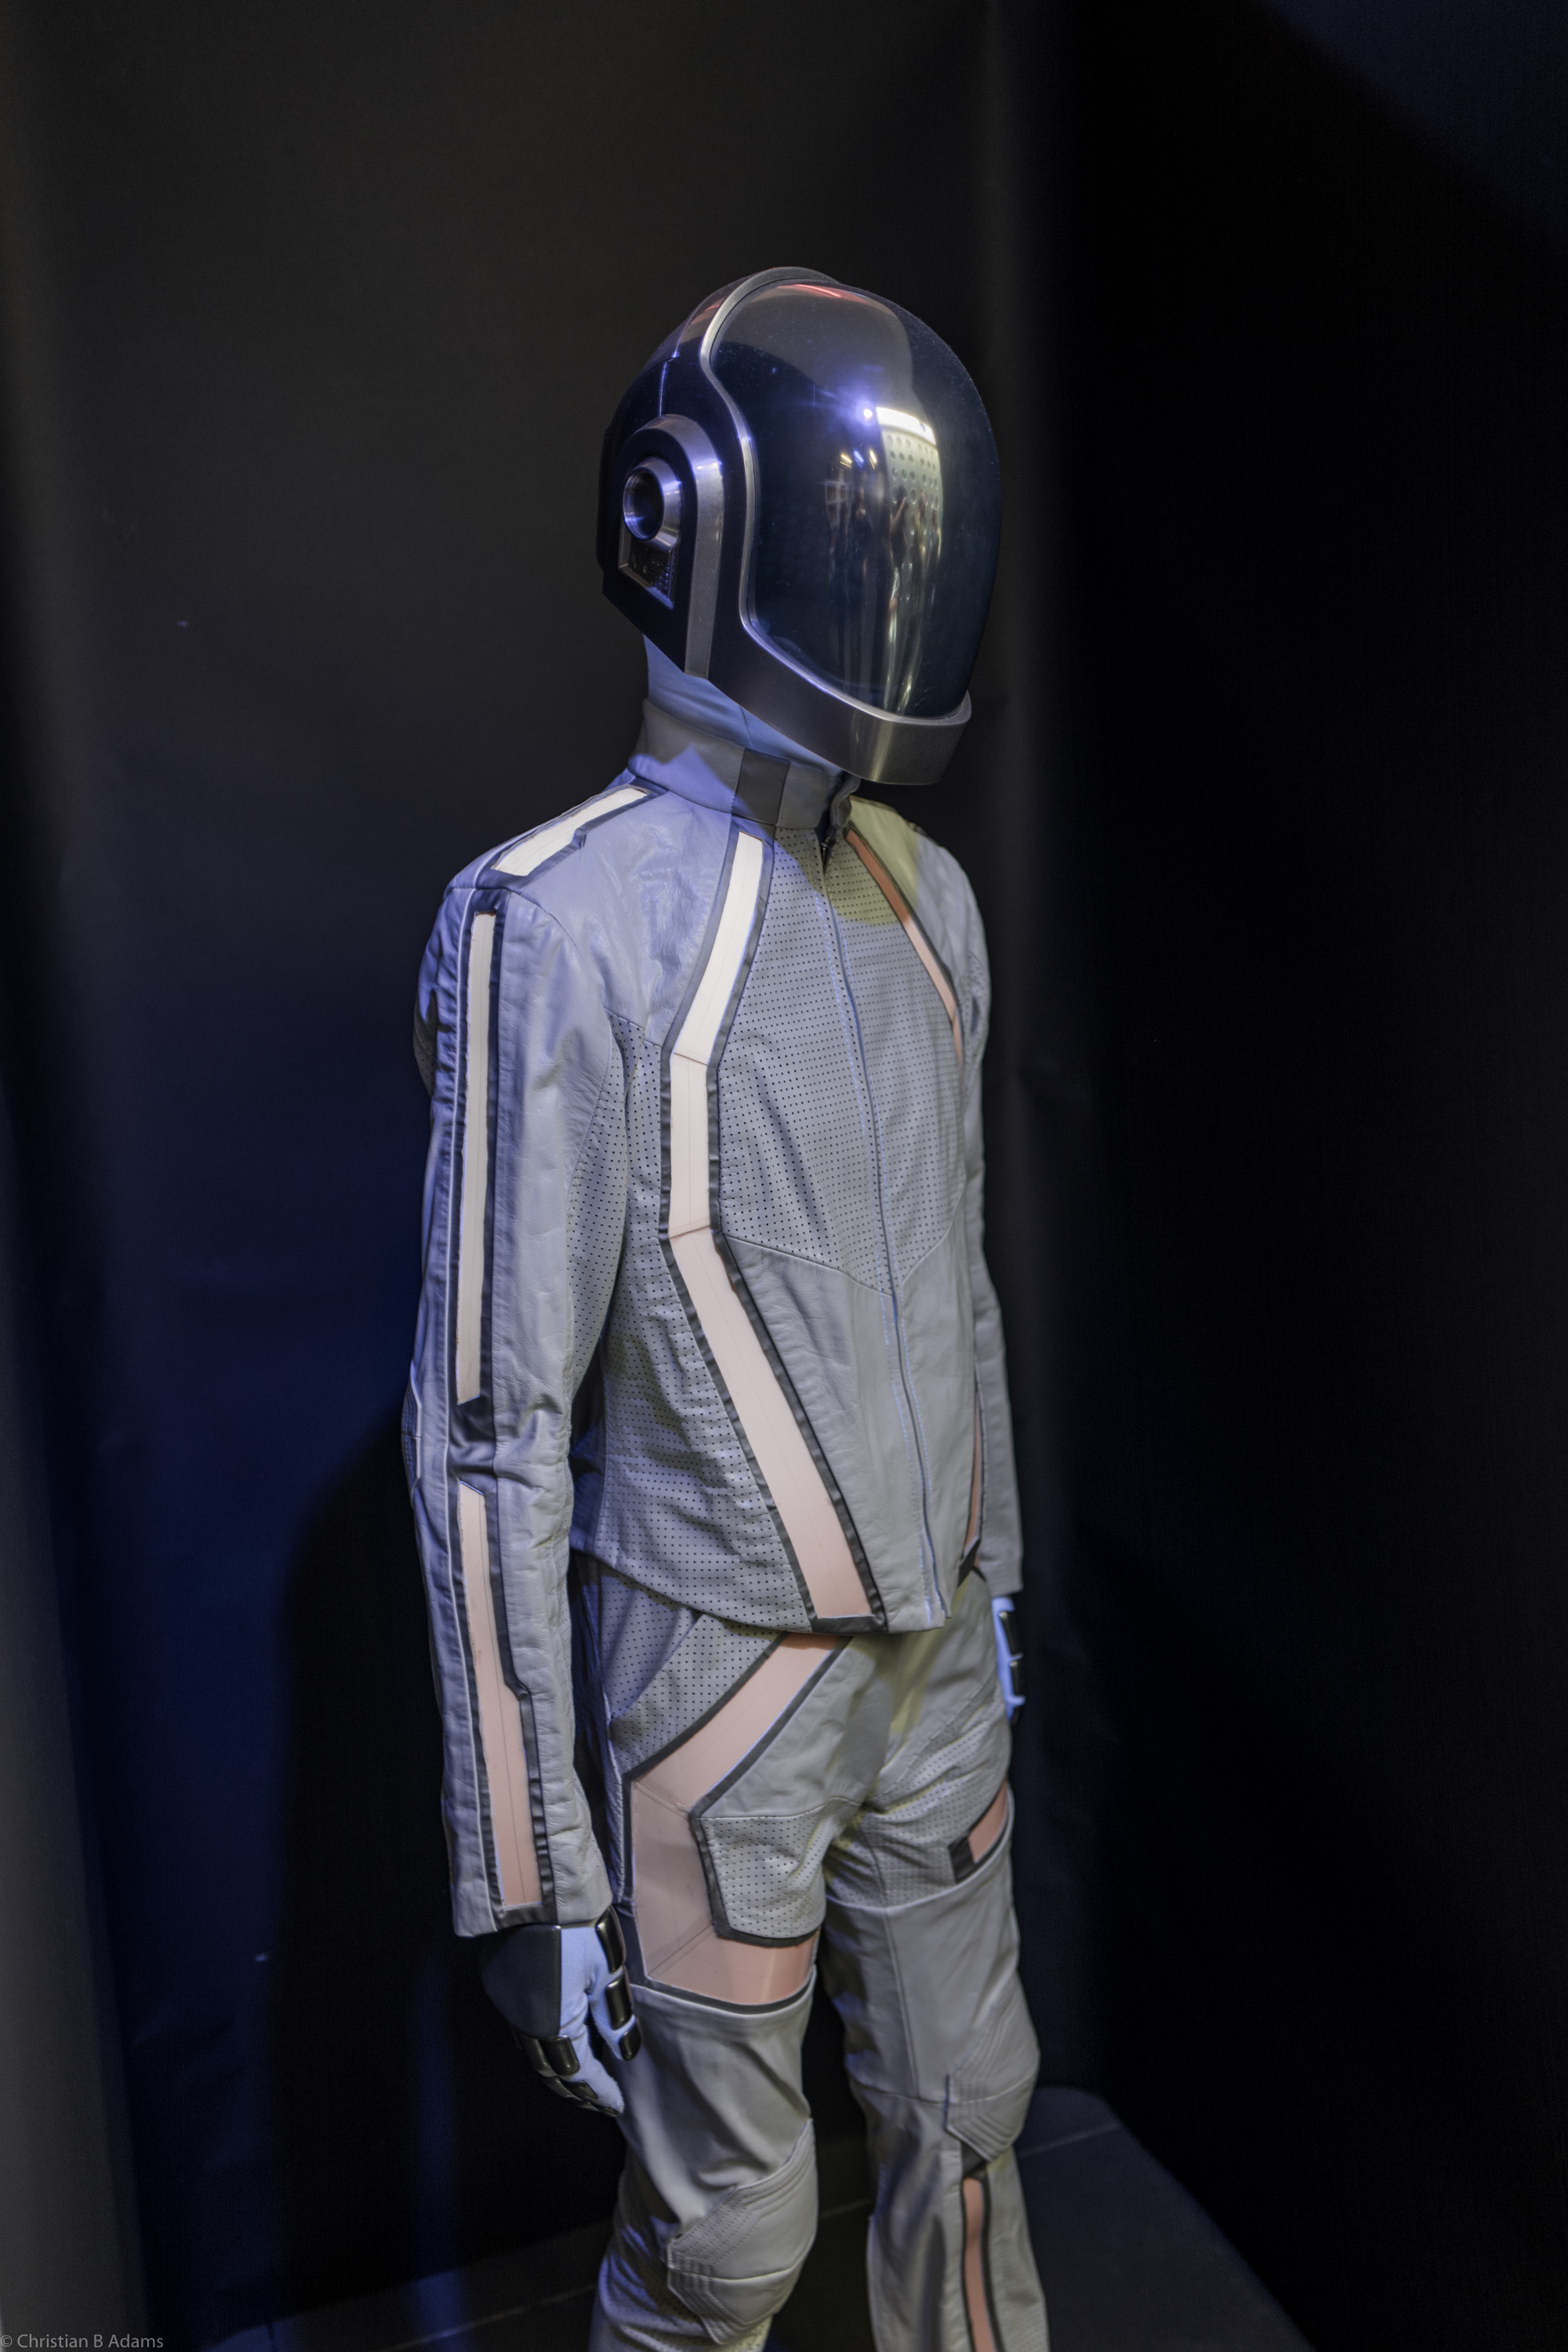 Guy-Manuel de Homem-Christo's Tron: Legacy cameo robot costume at the Daft Punk Pop Up at Maxfield Gallery Los Angeles in February of 2017.